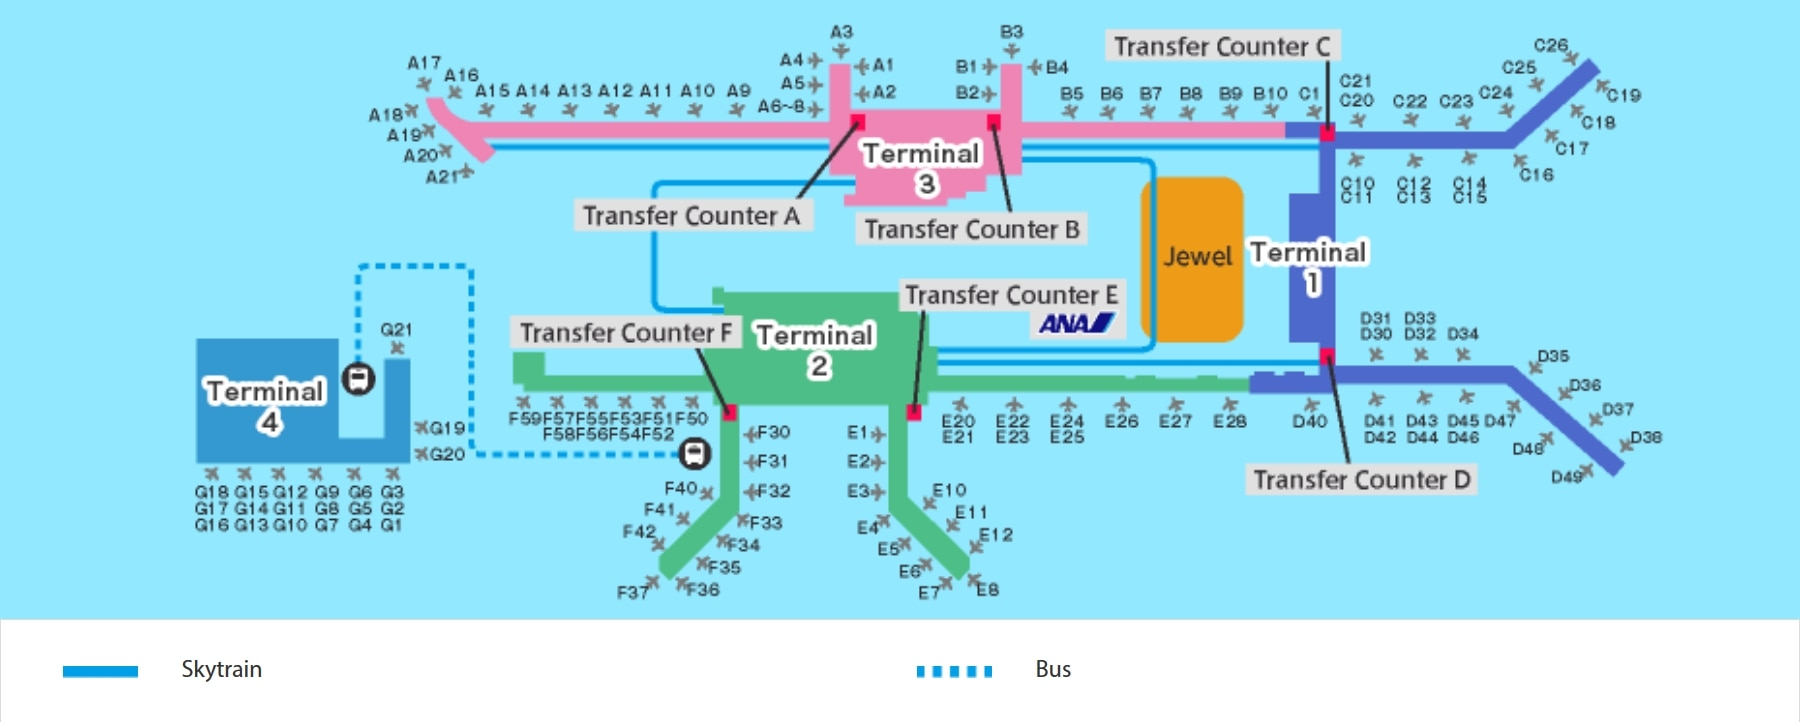 changi airport gate map Singapore Airport Airport And City Info At The Airport changi airport gate map